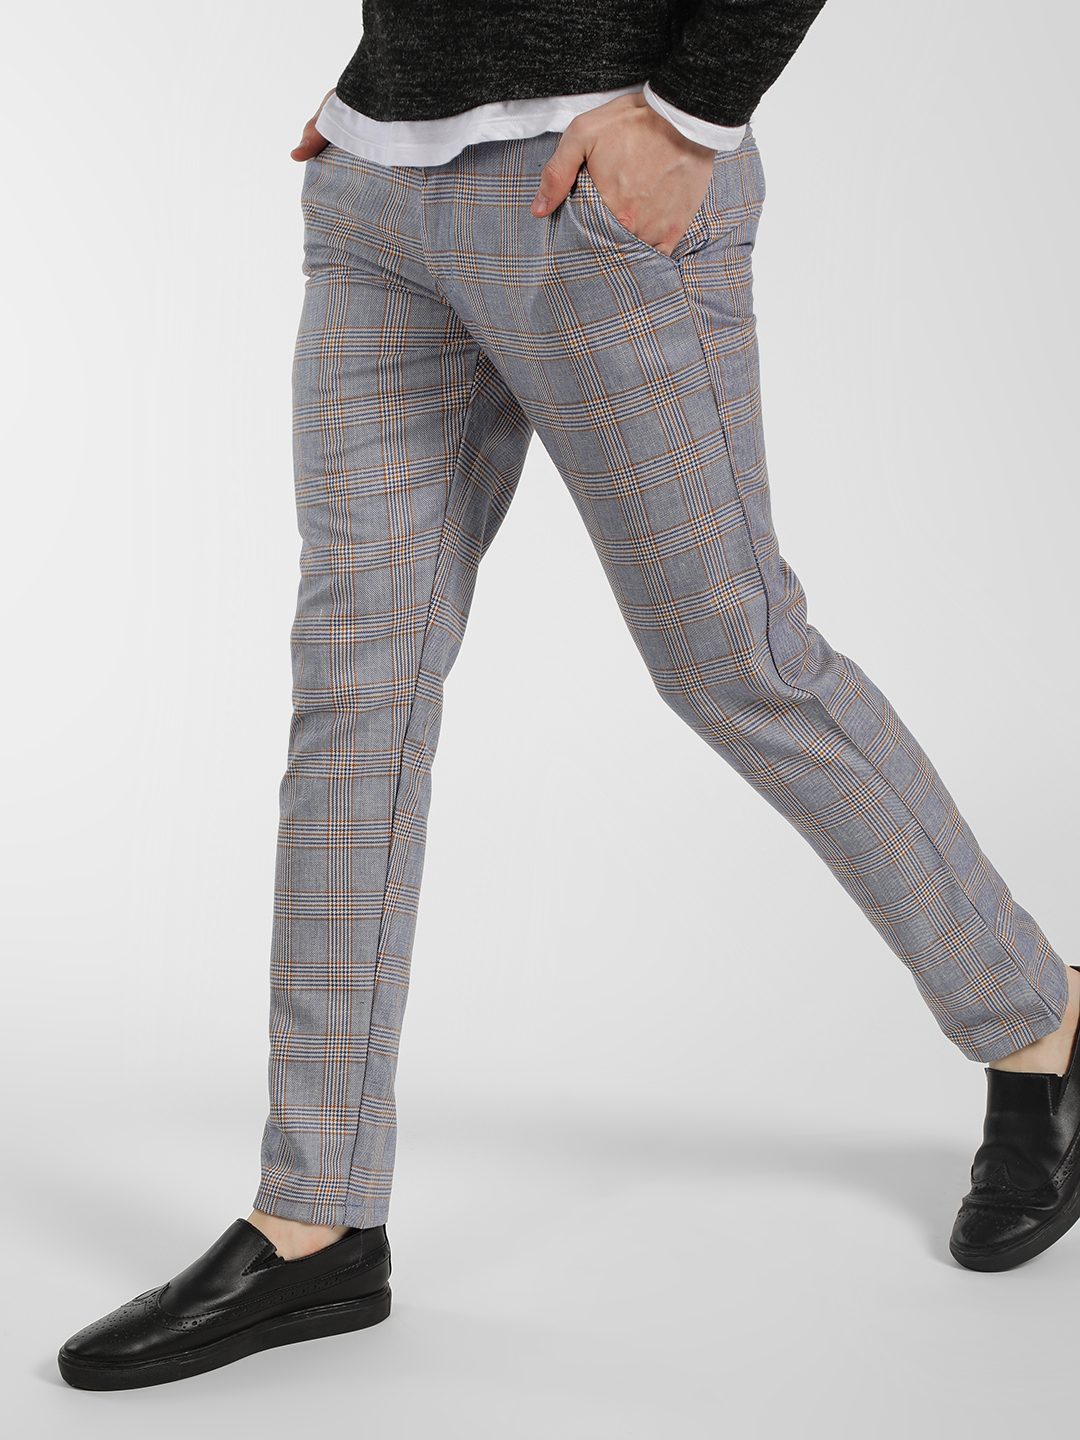 Mr Button Grey Windowpane Checkered Slim-Fit Trousers 1